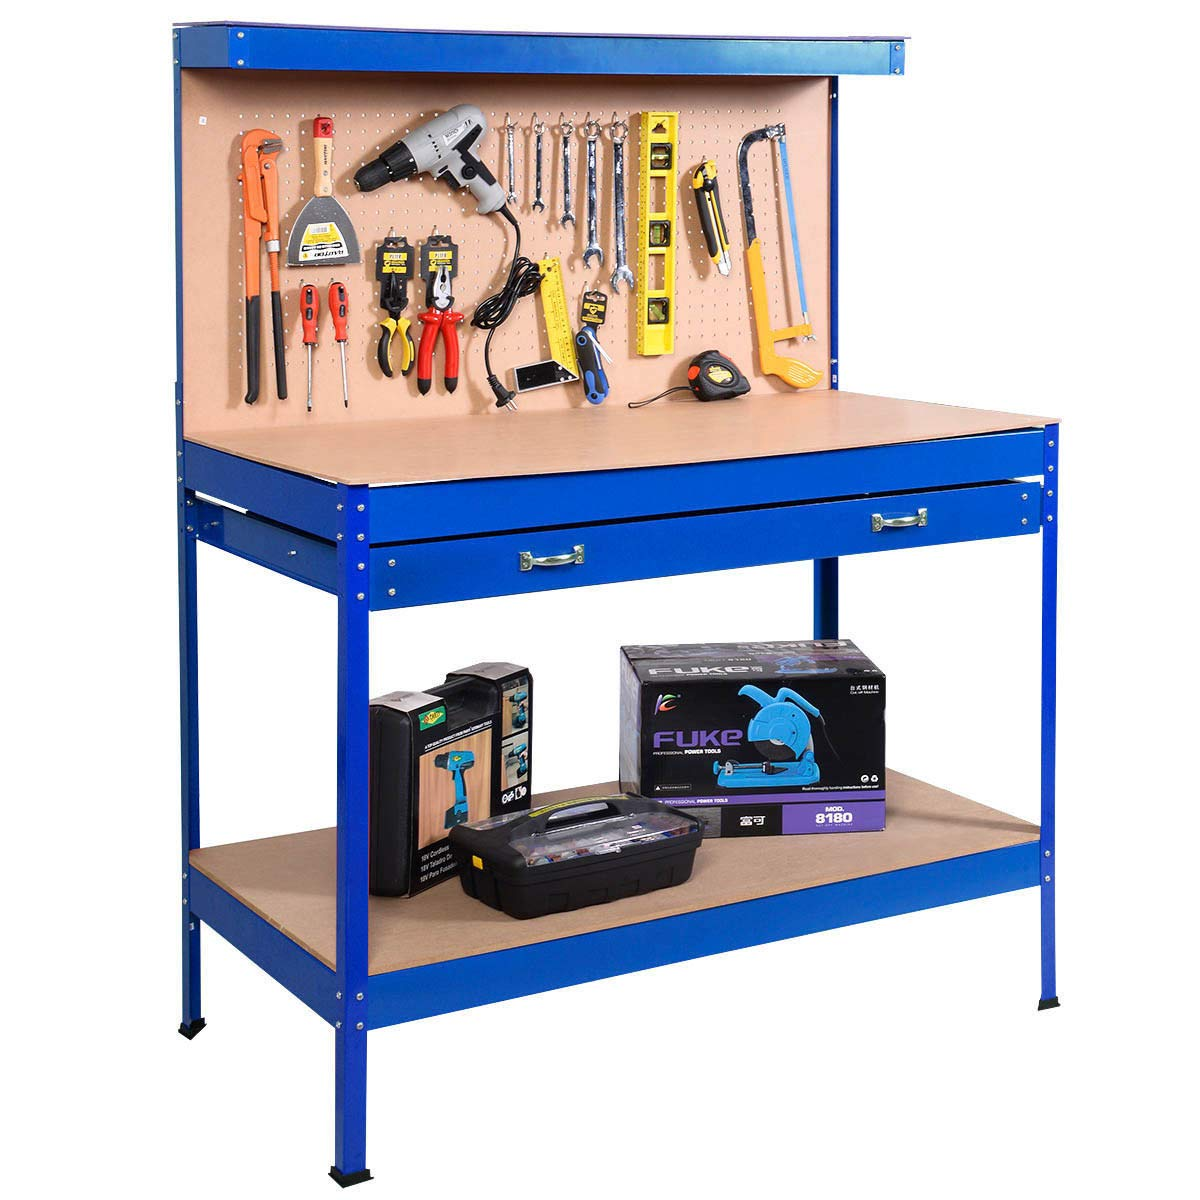 Phenomenal Safstar Work Bench Home Workshop Tools Table With Organizer Drawer Blue Pabps2019 Chair Design Images Pabps2019Com